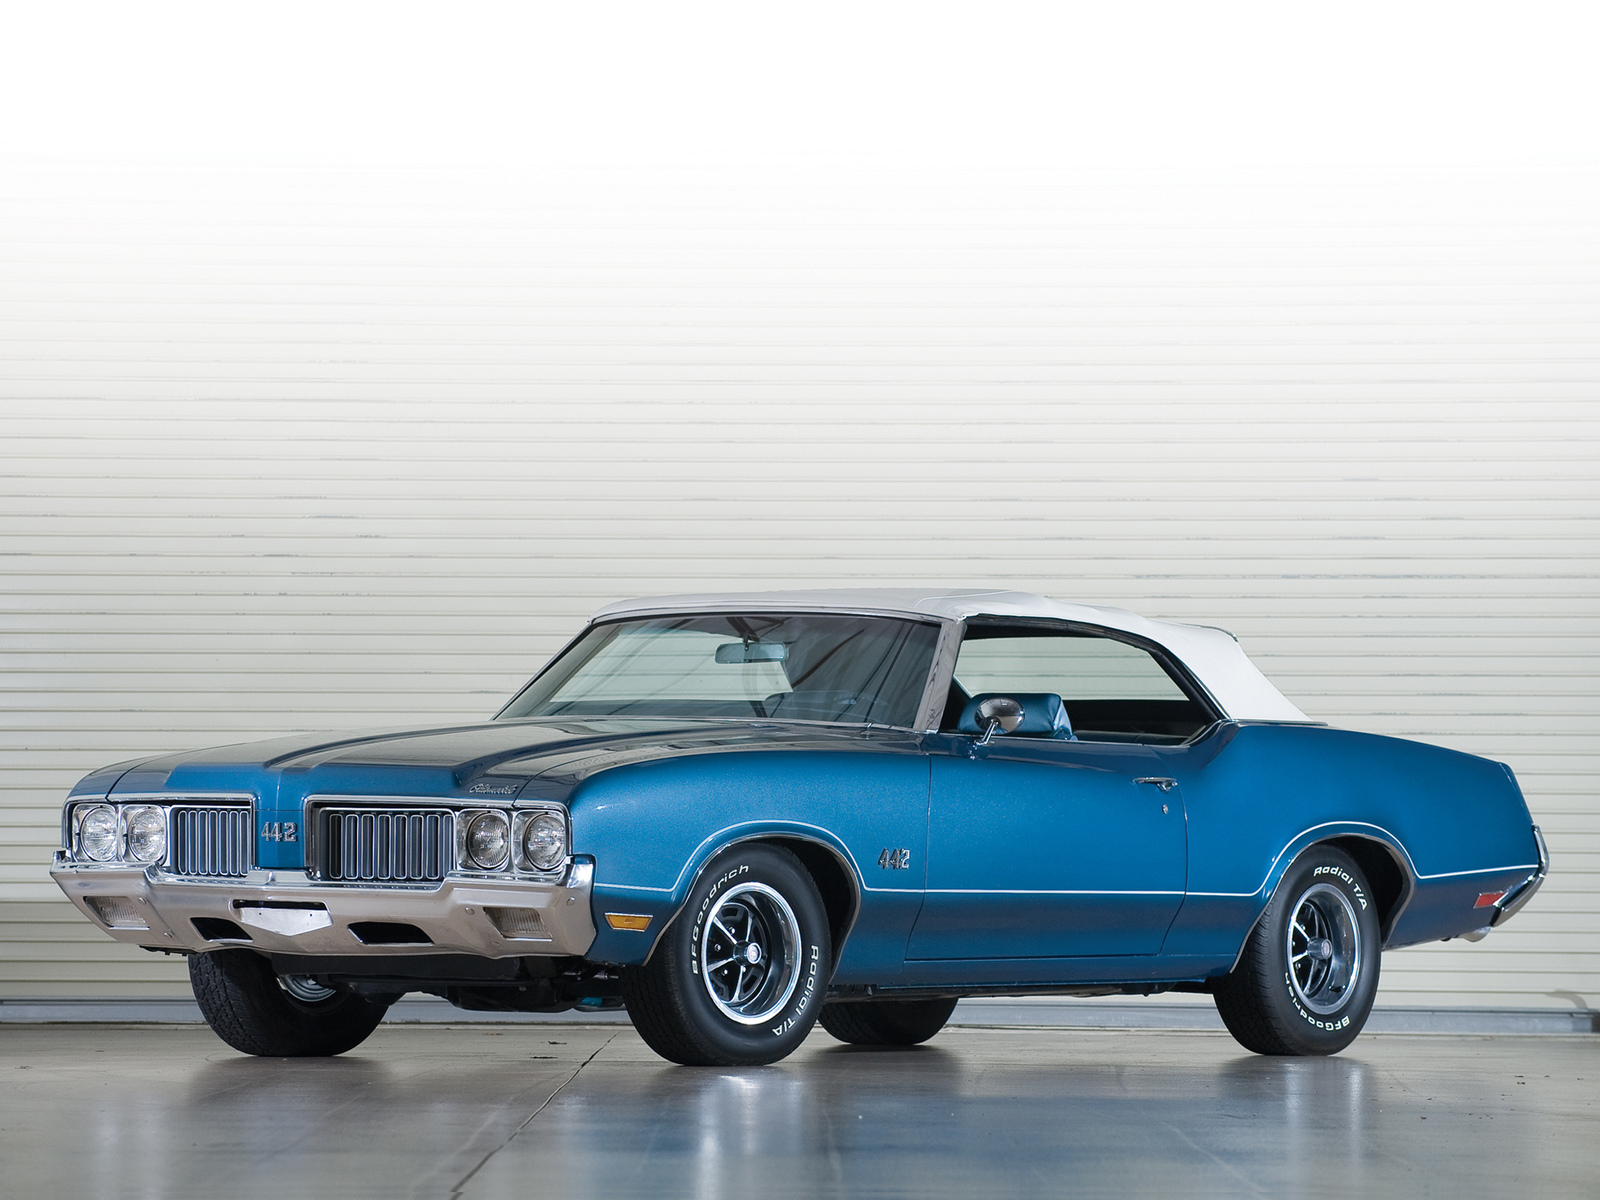 автомобили, ретро, oldsmobile, 442 convertible